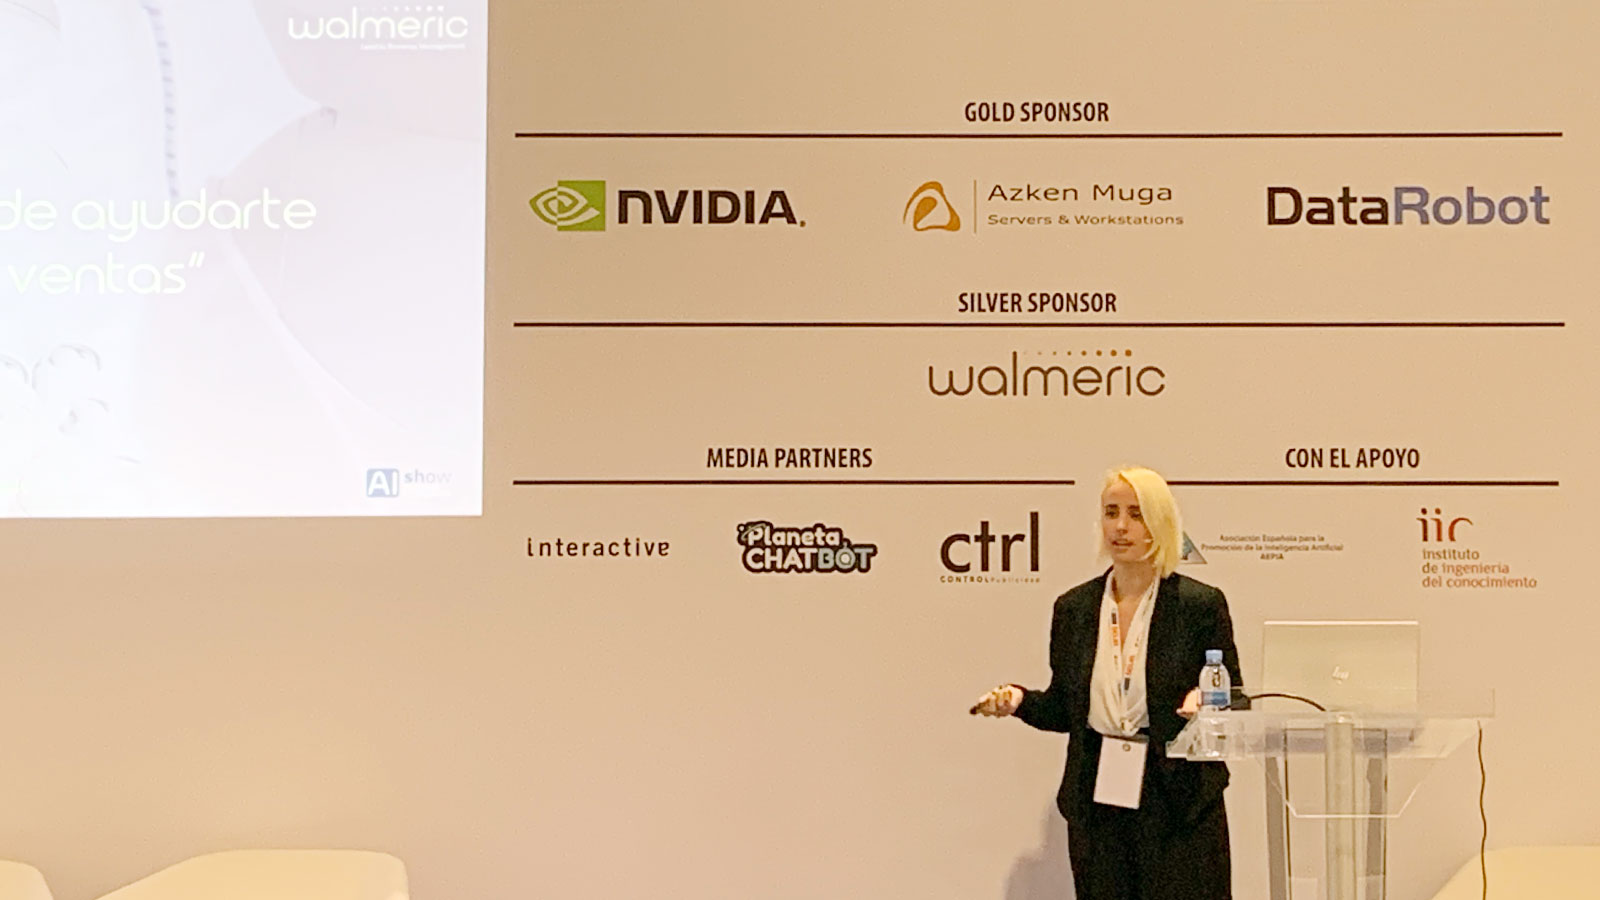 Irene Medina, Marketing Director at Walmeric, giving a talk in AIshow